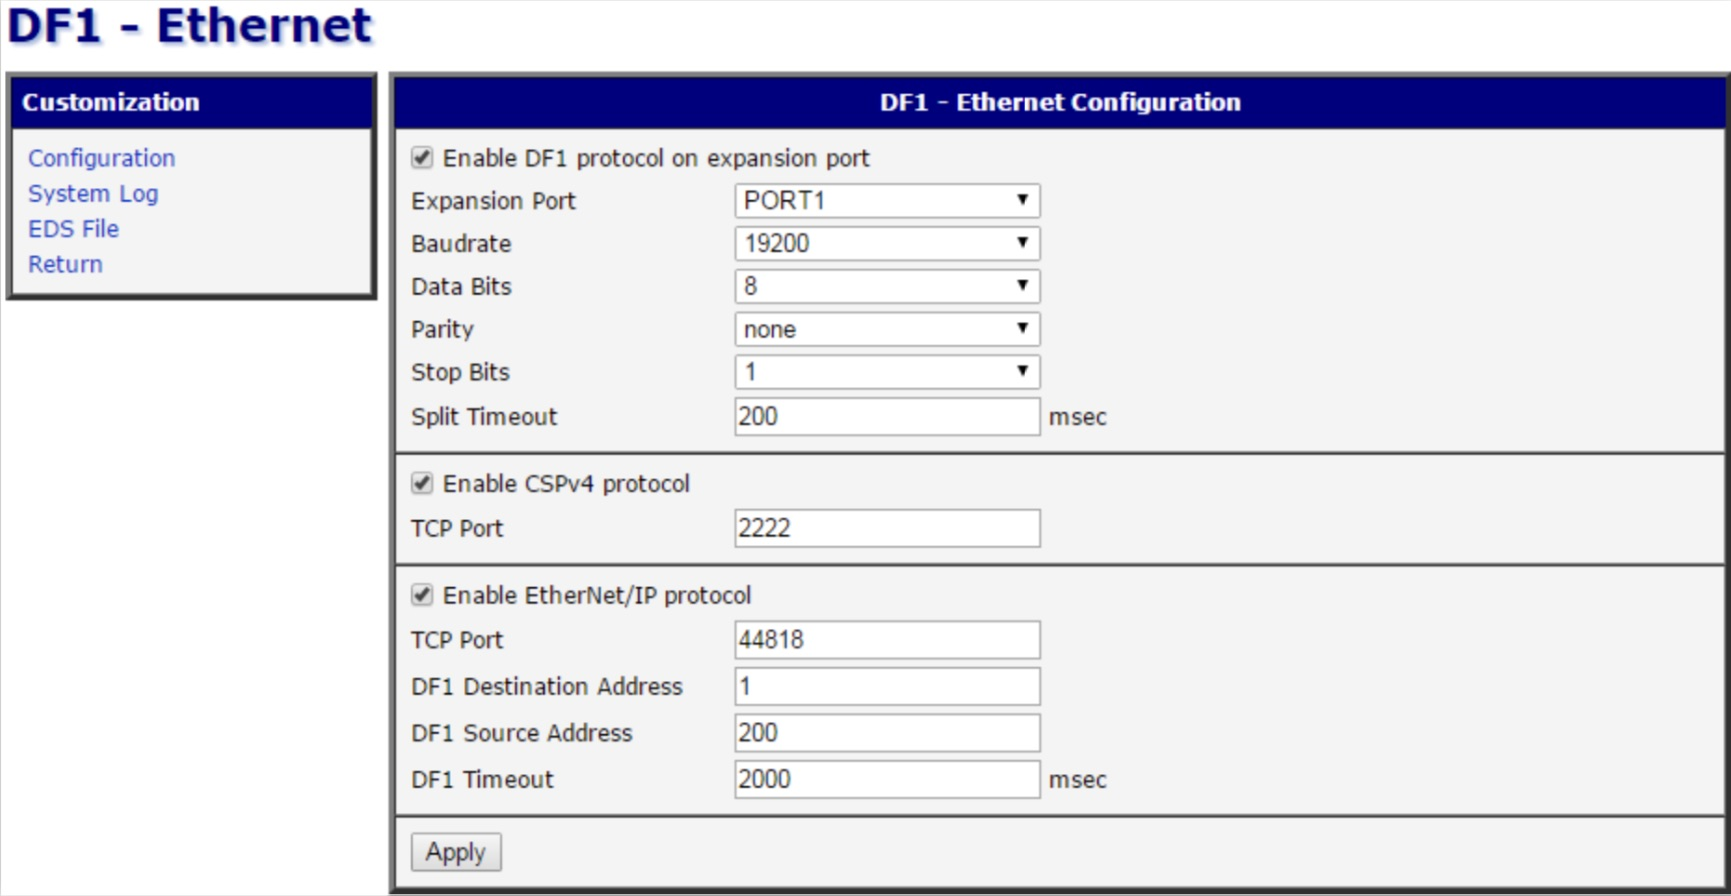 Configuration Options of DF1 to Ethernet/IP 4G modem router